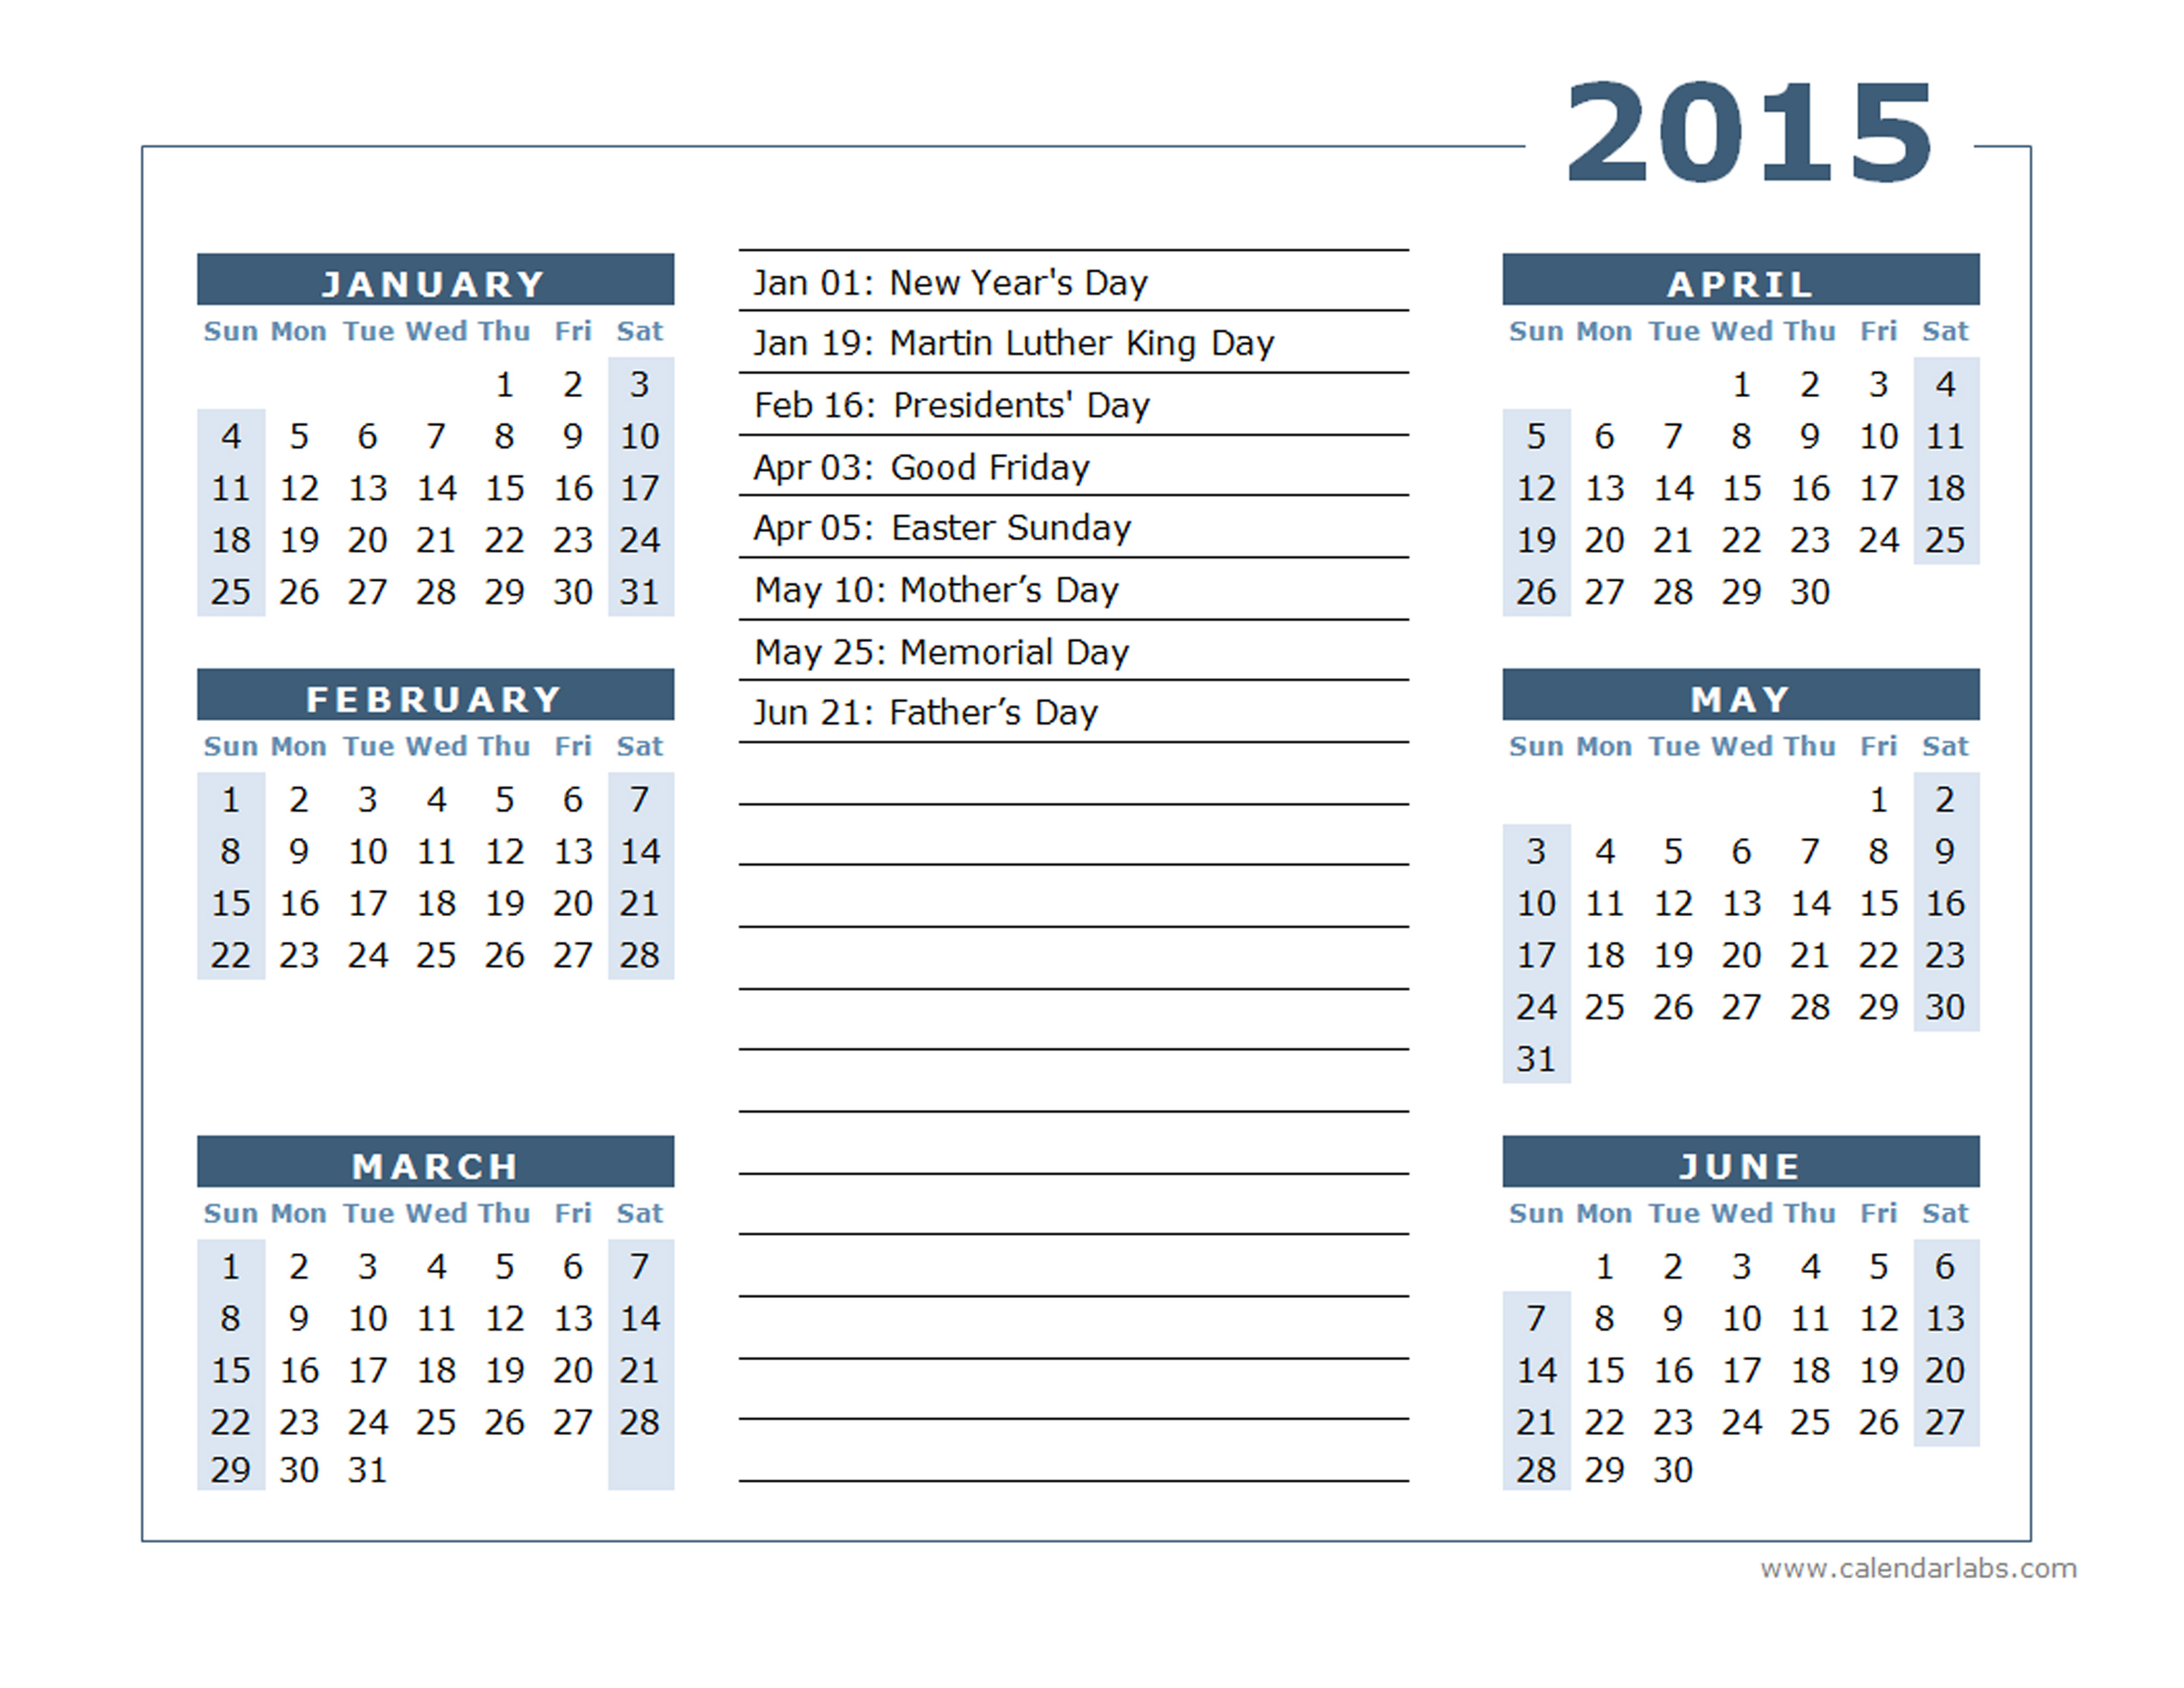 2015 yearly calendar template with holidays